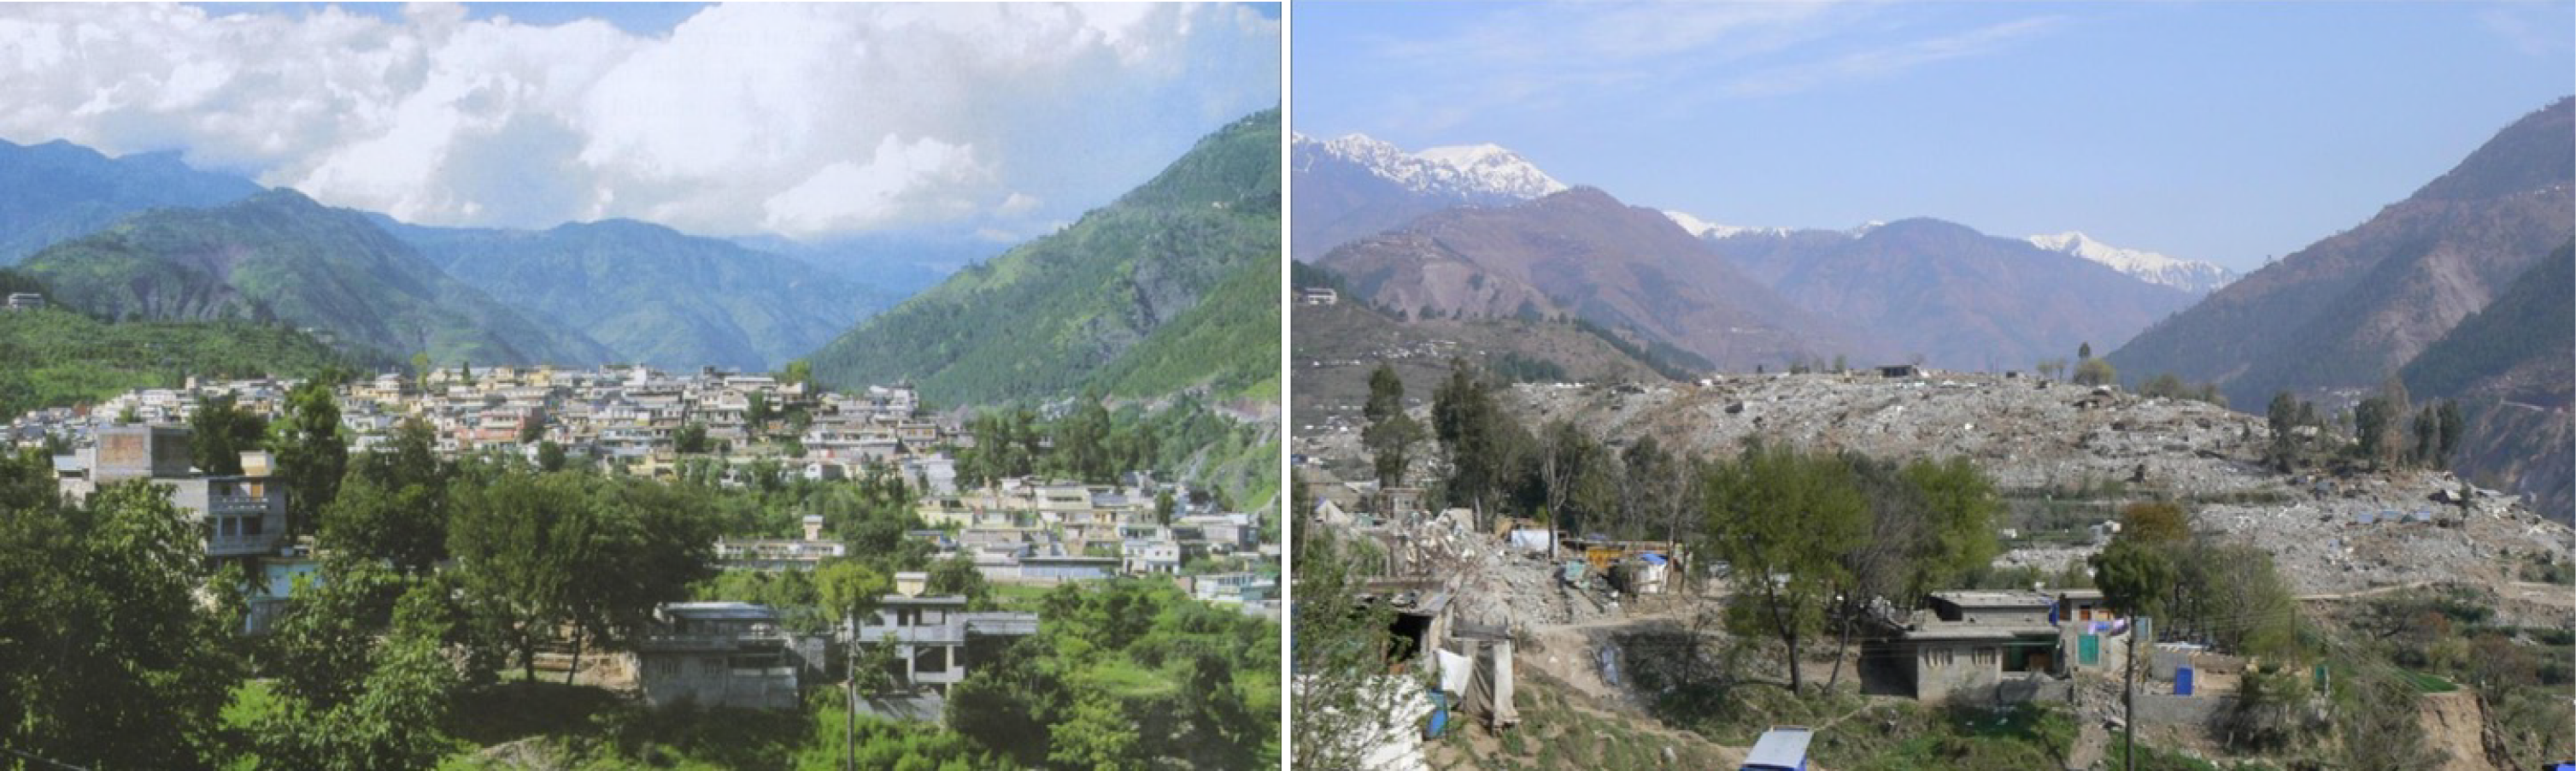 This is a valley/basin in Balakot, Pakistan which was completely flattened due to the 2005 Kashmir Earthquake